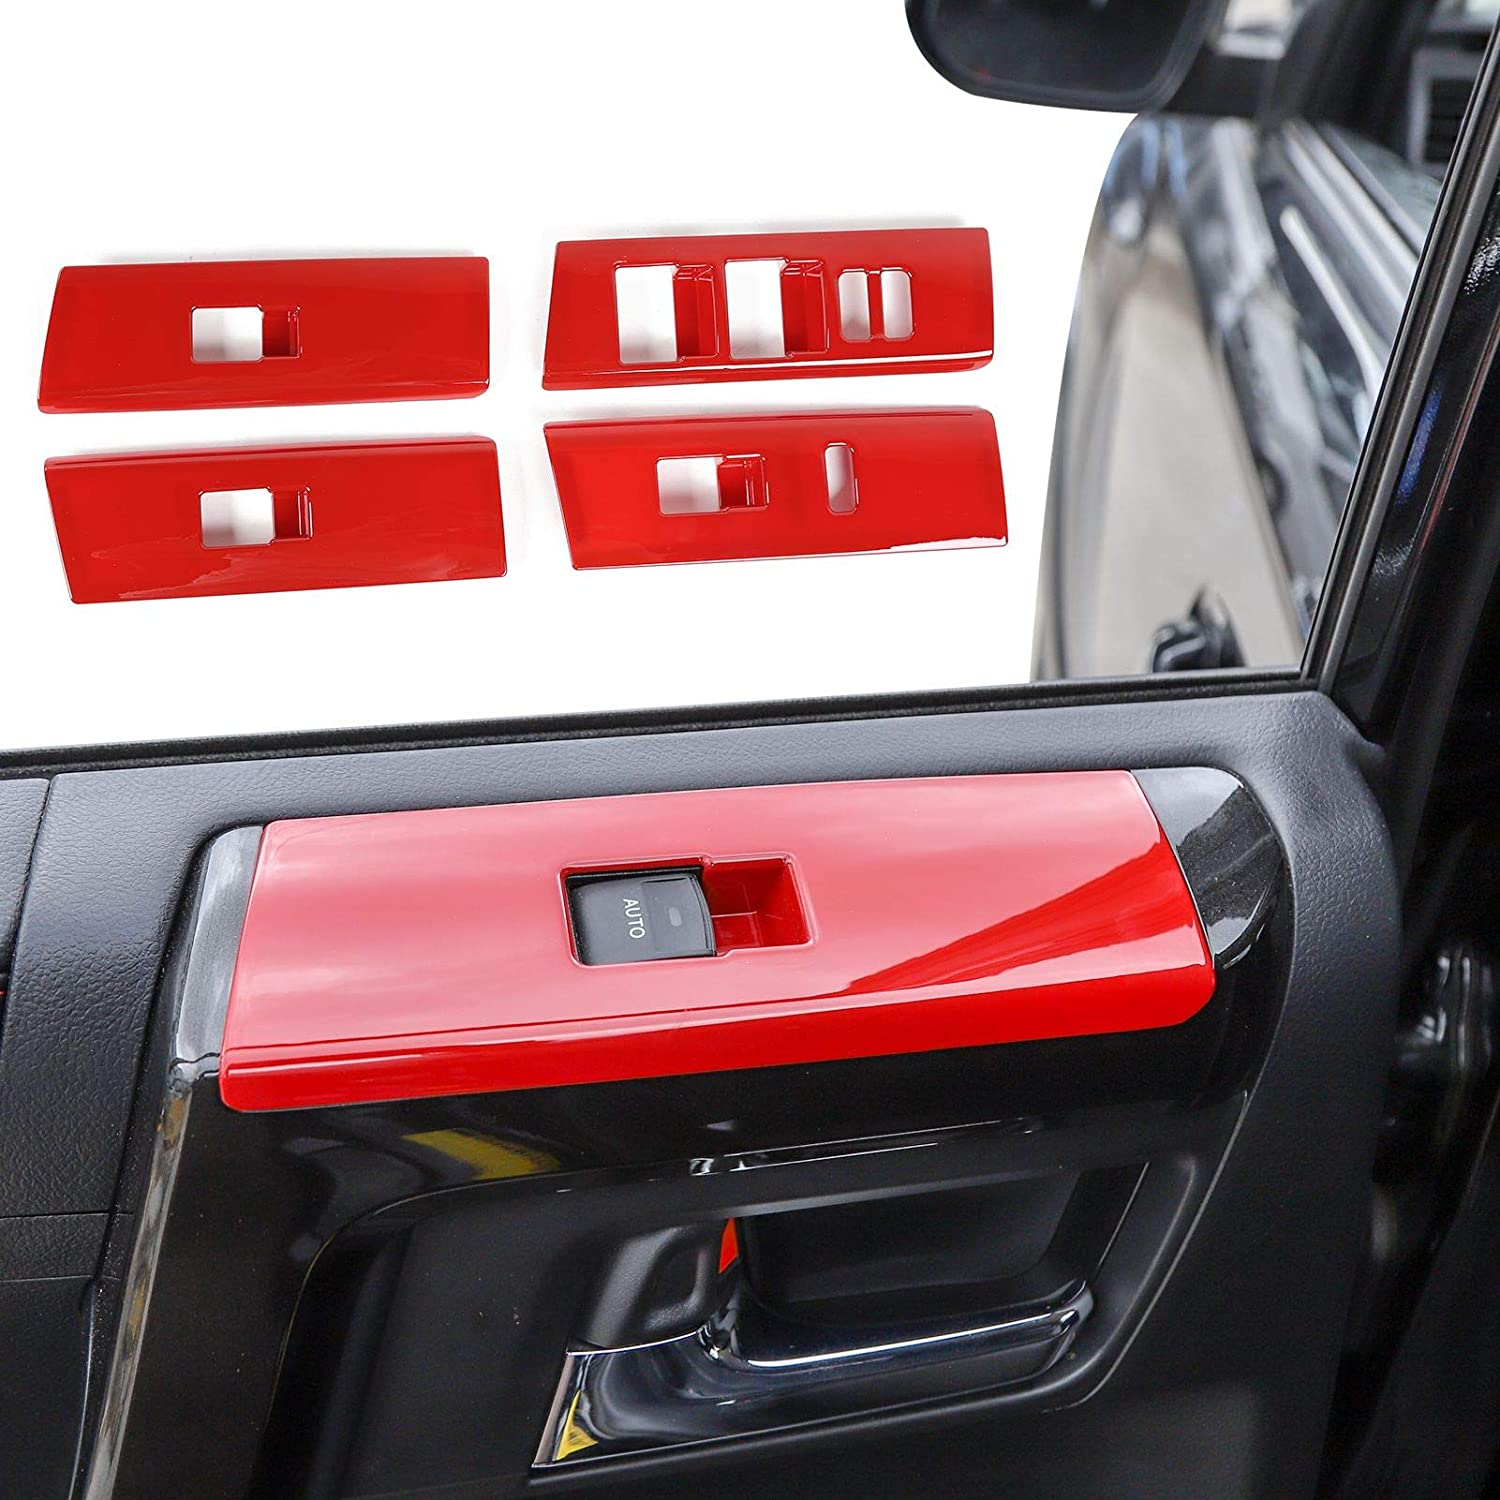 Voodonala for 4runner Window Lift Switch Decoration Trim fit Toyota 4runner SUV 2010-2019 NOT Fit Right Hand Drive(Red)